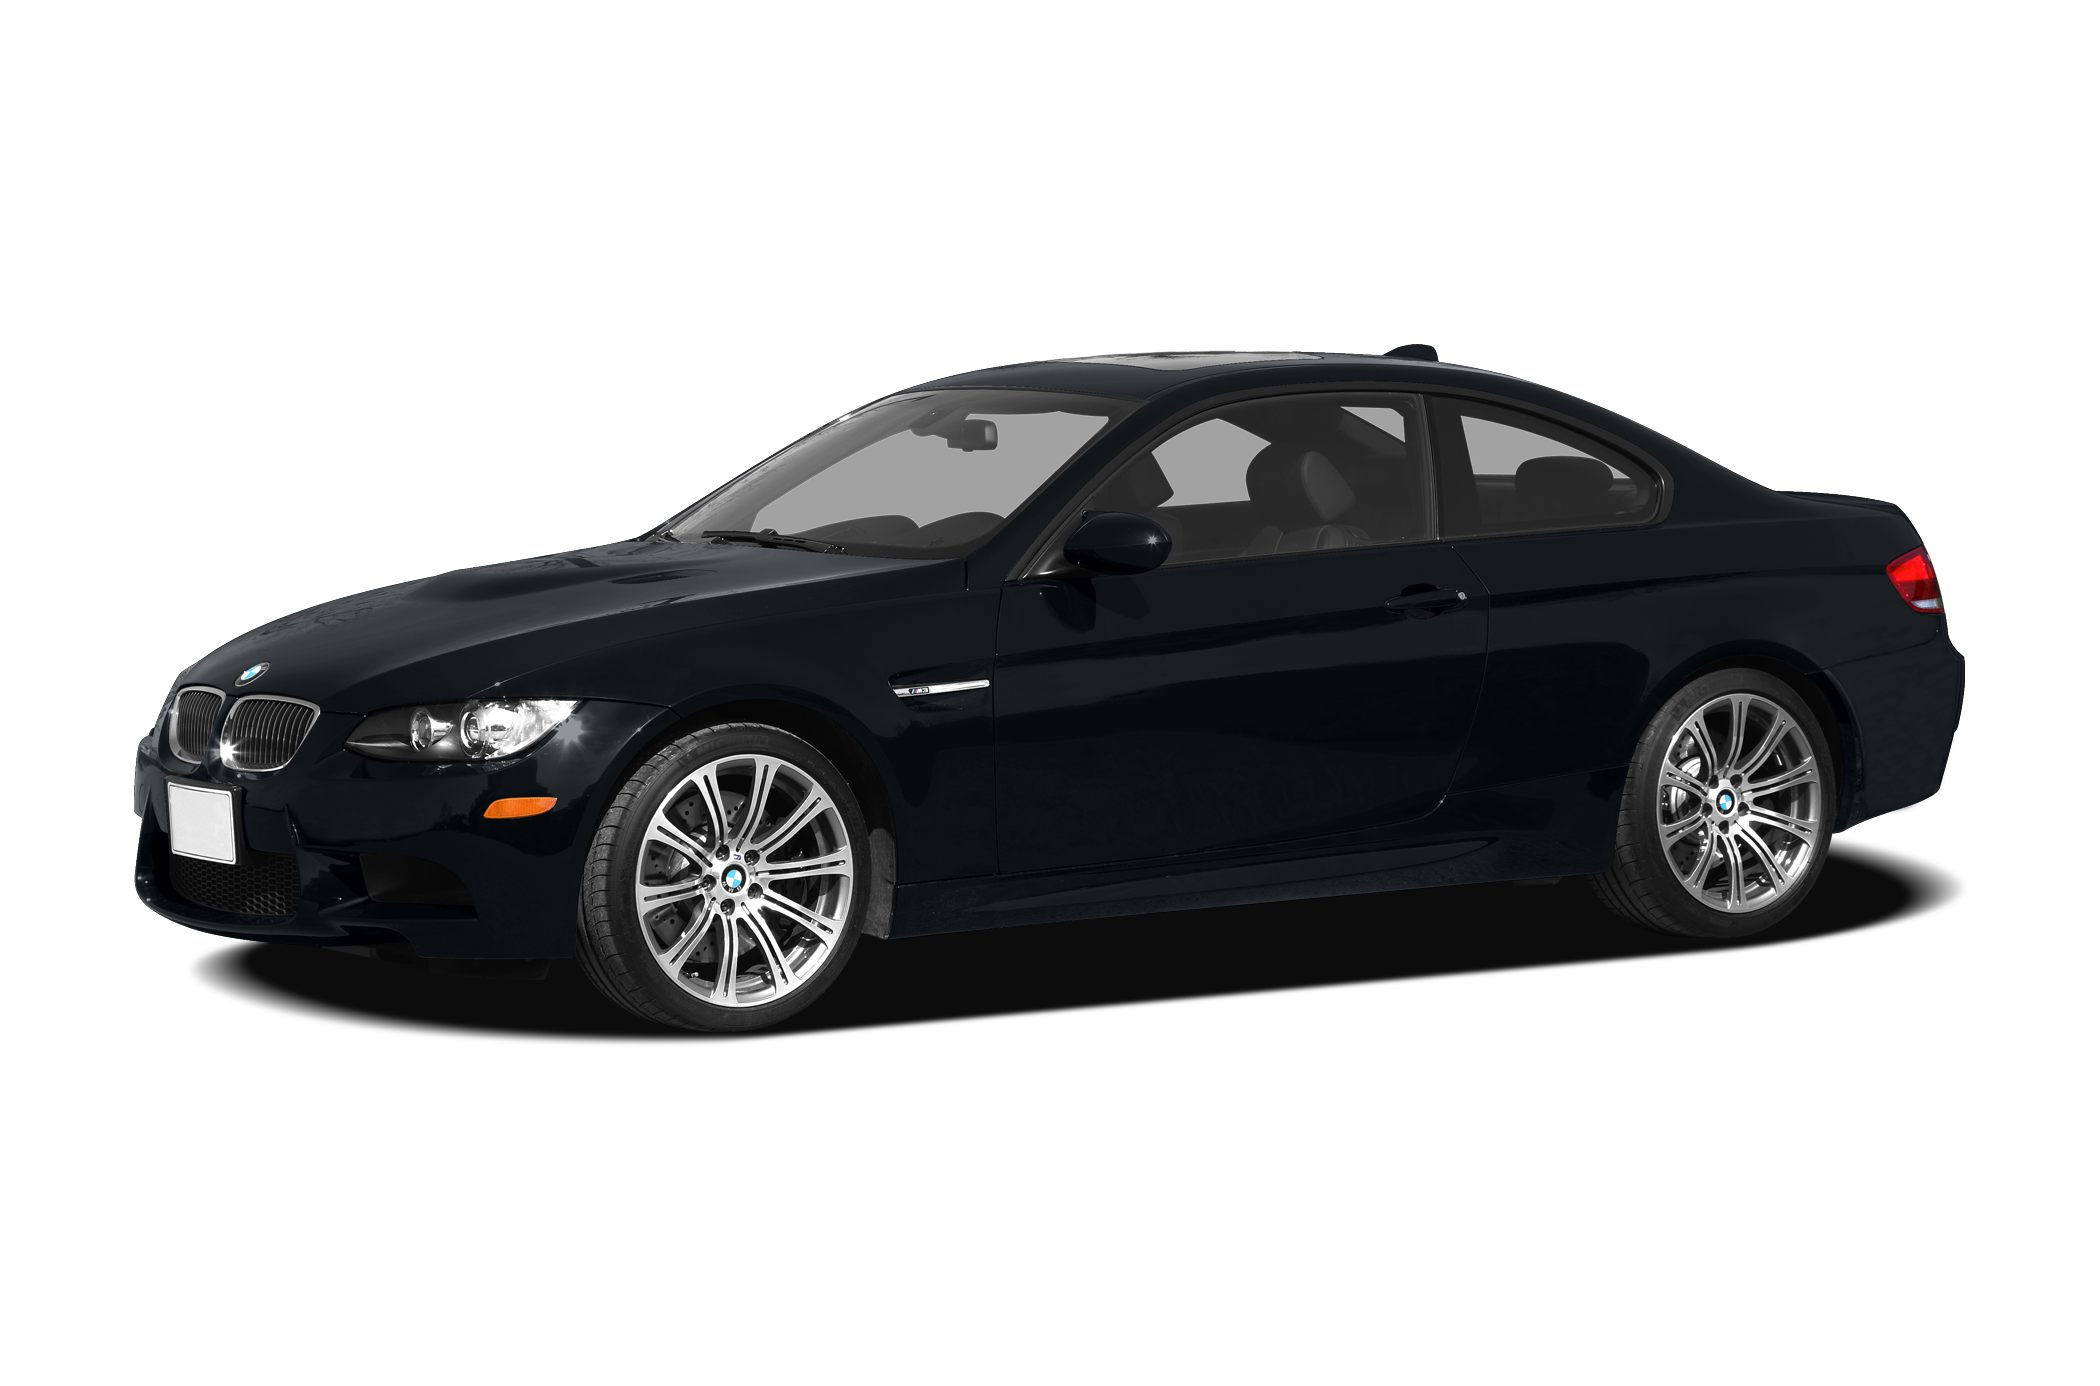 2008 BMW M3 Specs and Prices